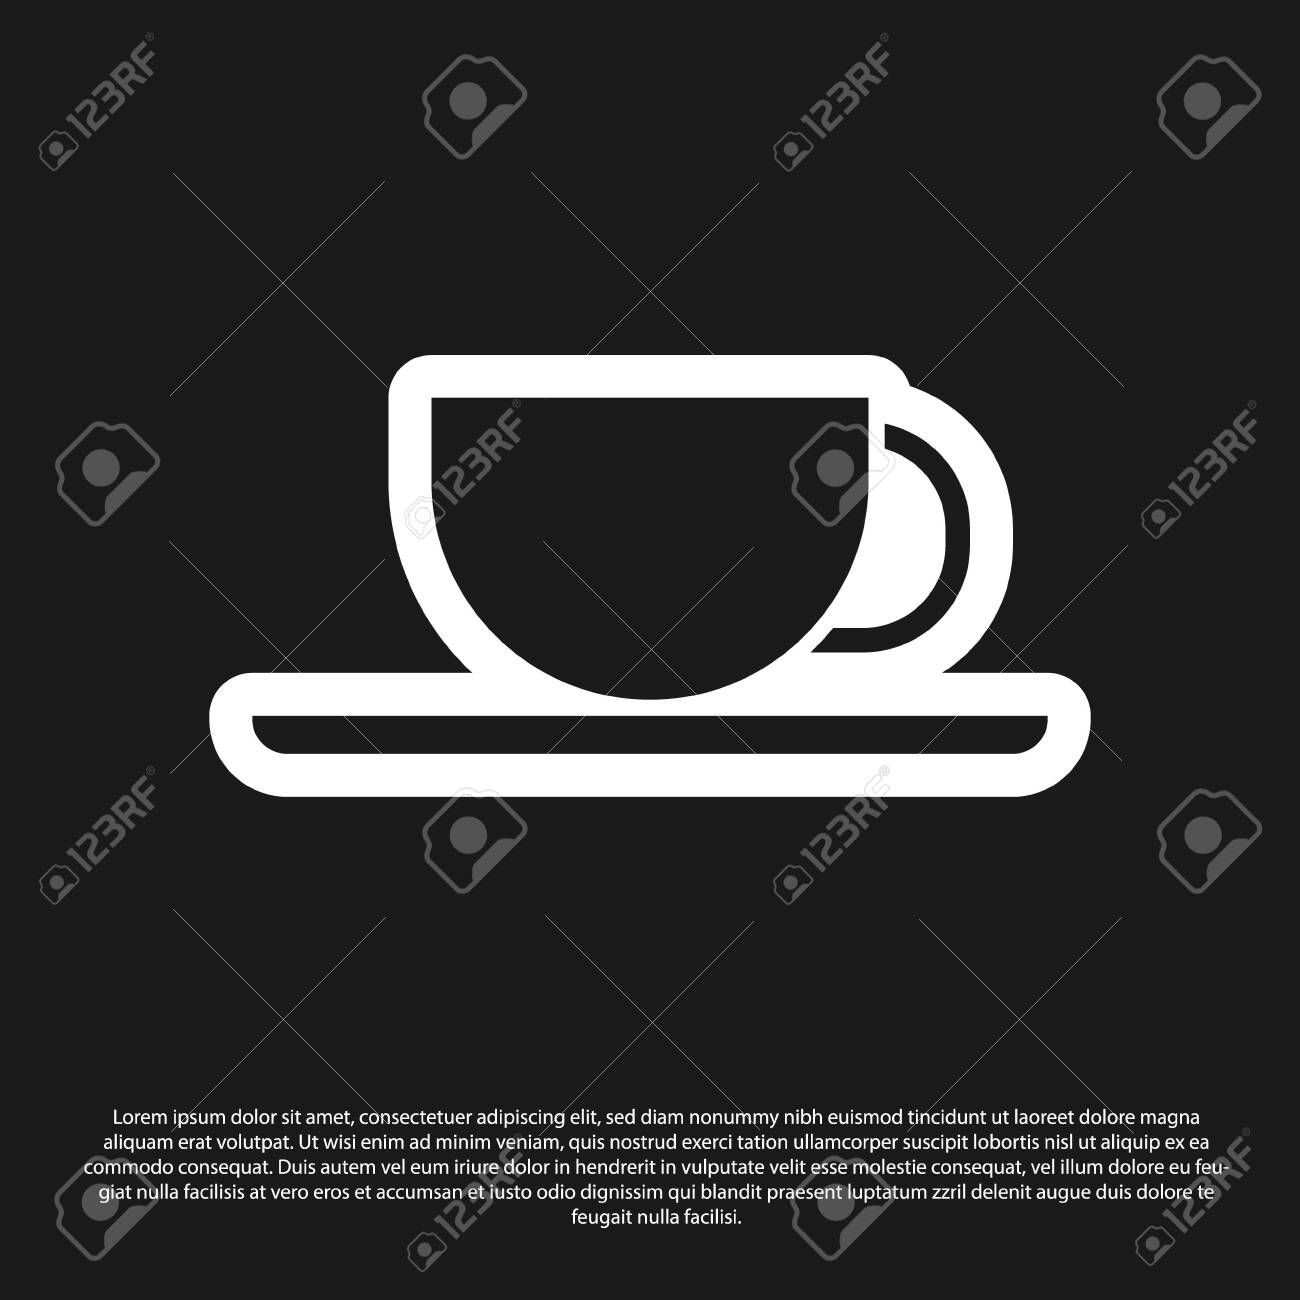 black coffee cup icon isolated on black background tea cup royalty free cliparts vectors and stock illustration image 140254597 123rf com